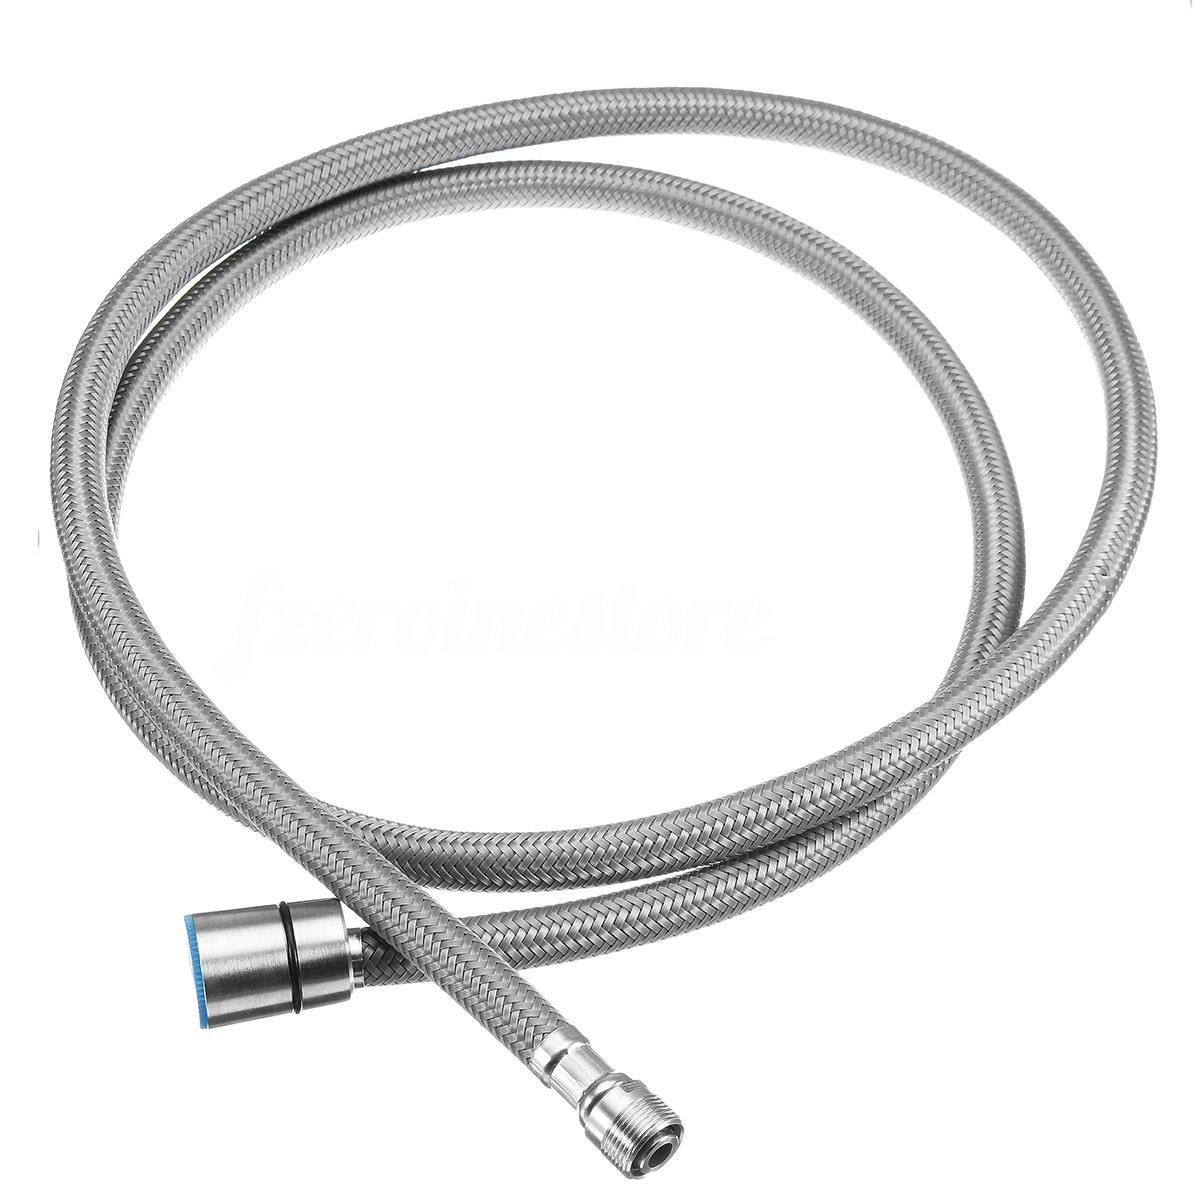 1200x1200 Tapcet Nylon Water Hose Taps Kitchen Pull Out Mixer Faucet 304